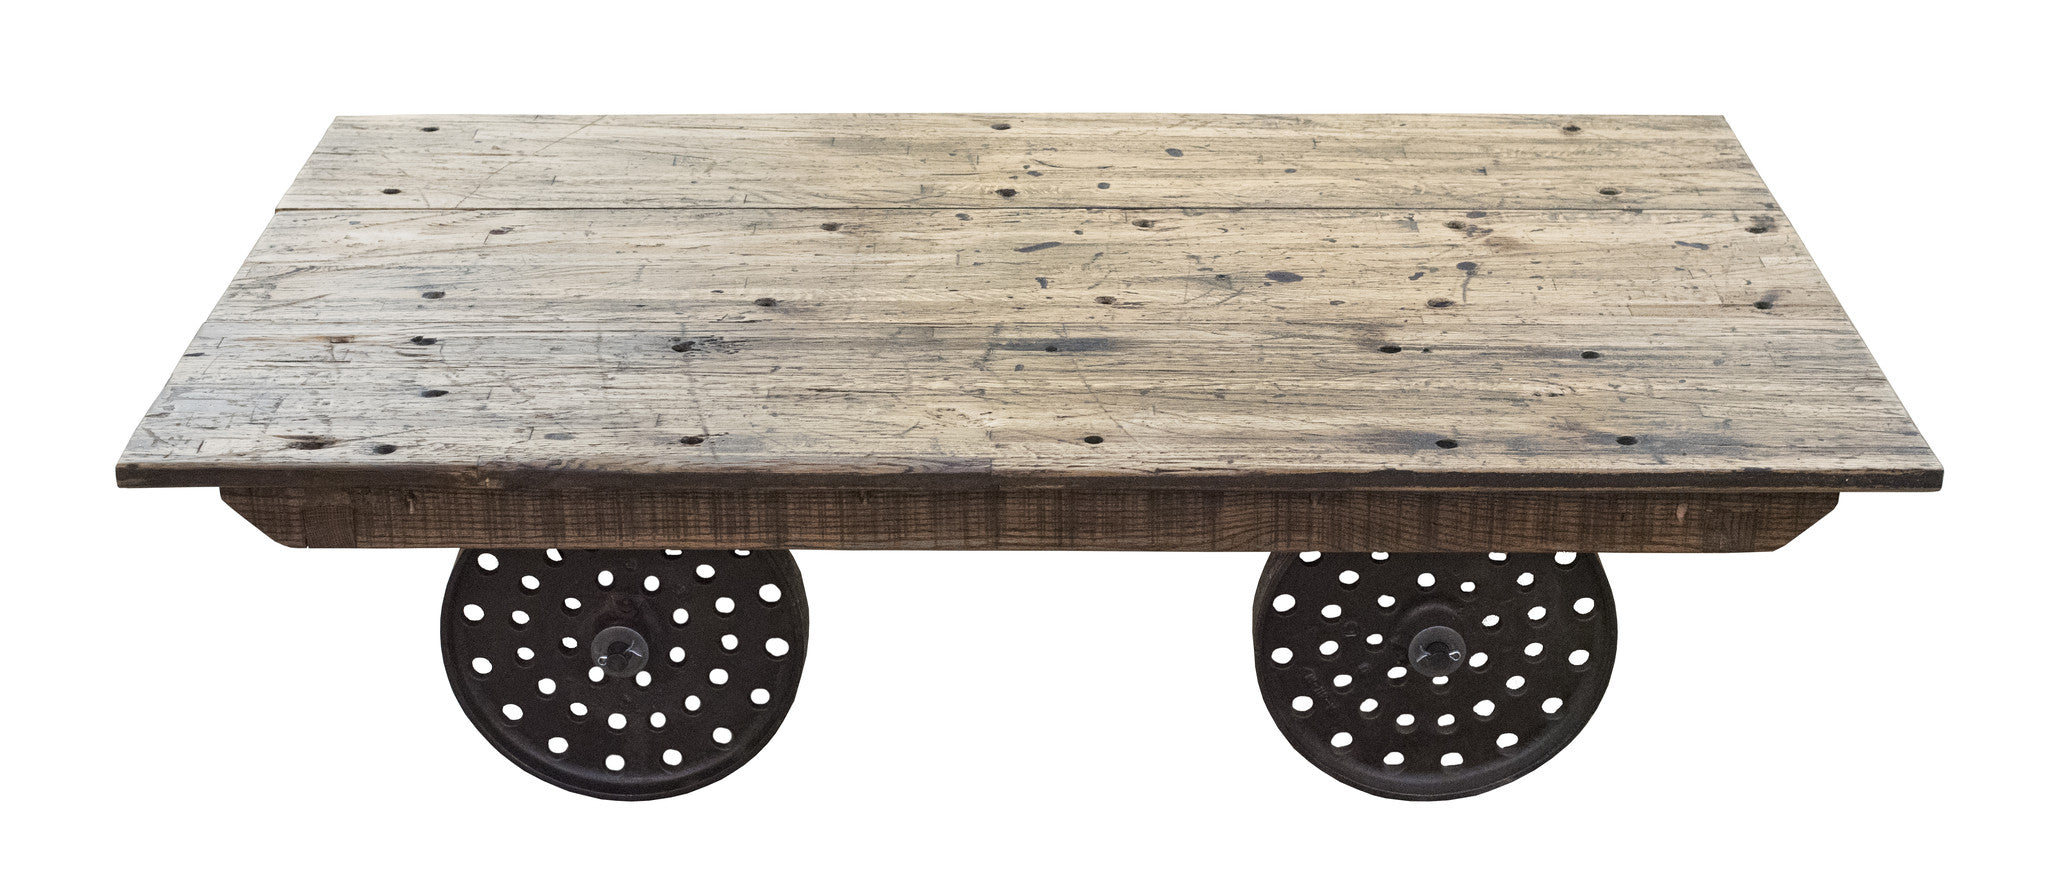 Trolley Cart Coffee Table   Paul Michael Company   1